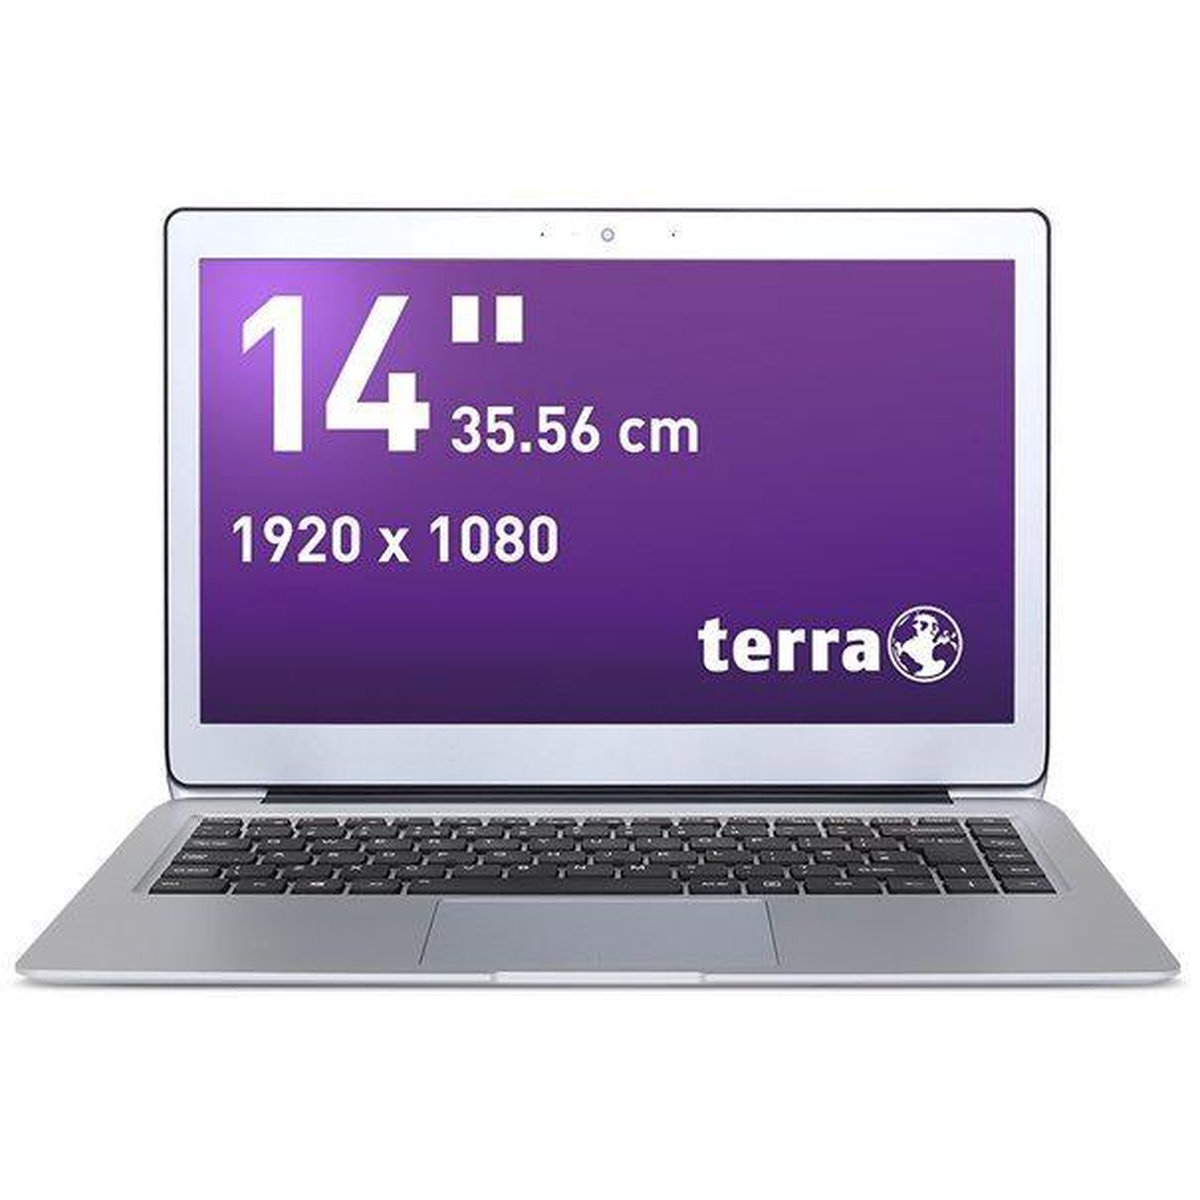 "Terra mobile 1460p 14"" full-hd laptop, i5-8200y, 8gb, 256gb ssd, windows 10"